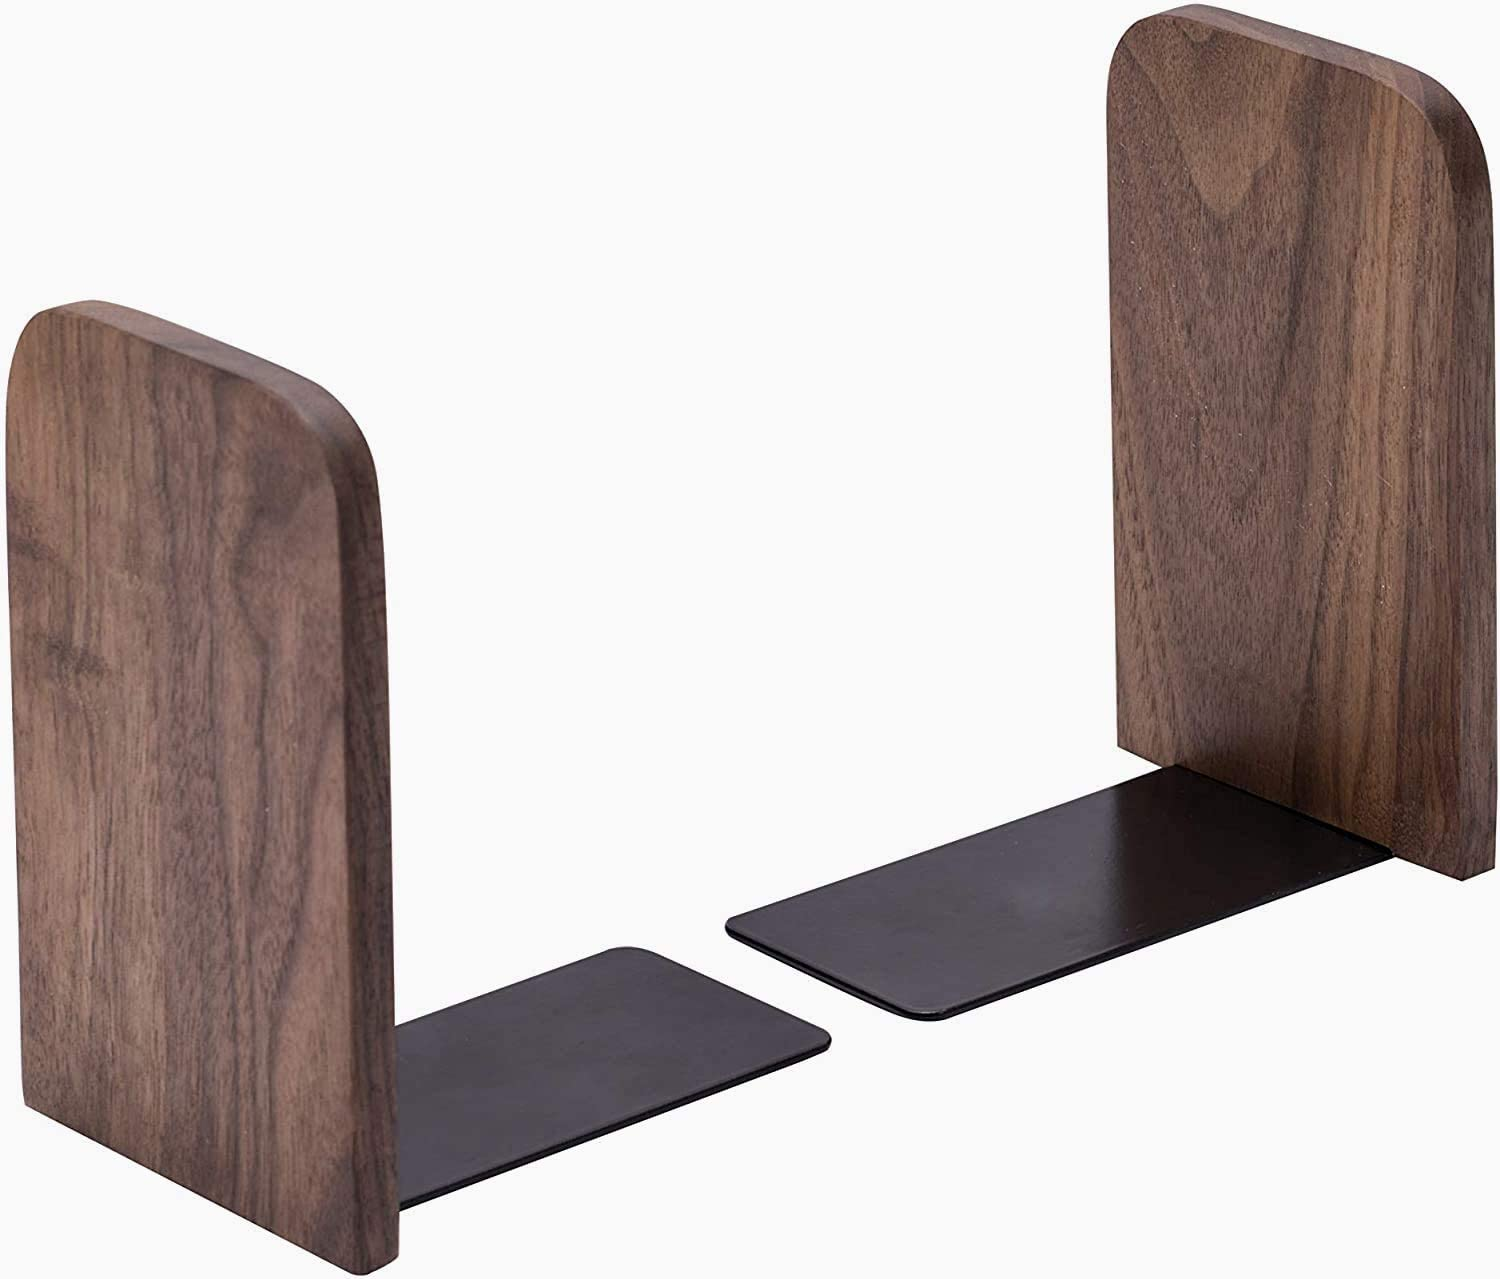 Lykia Wooden BOOKENDS Bookends Decorative Max 60% OFF Pair Blac High quality new 1 Pack of